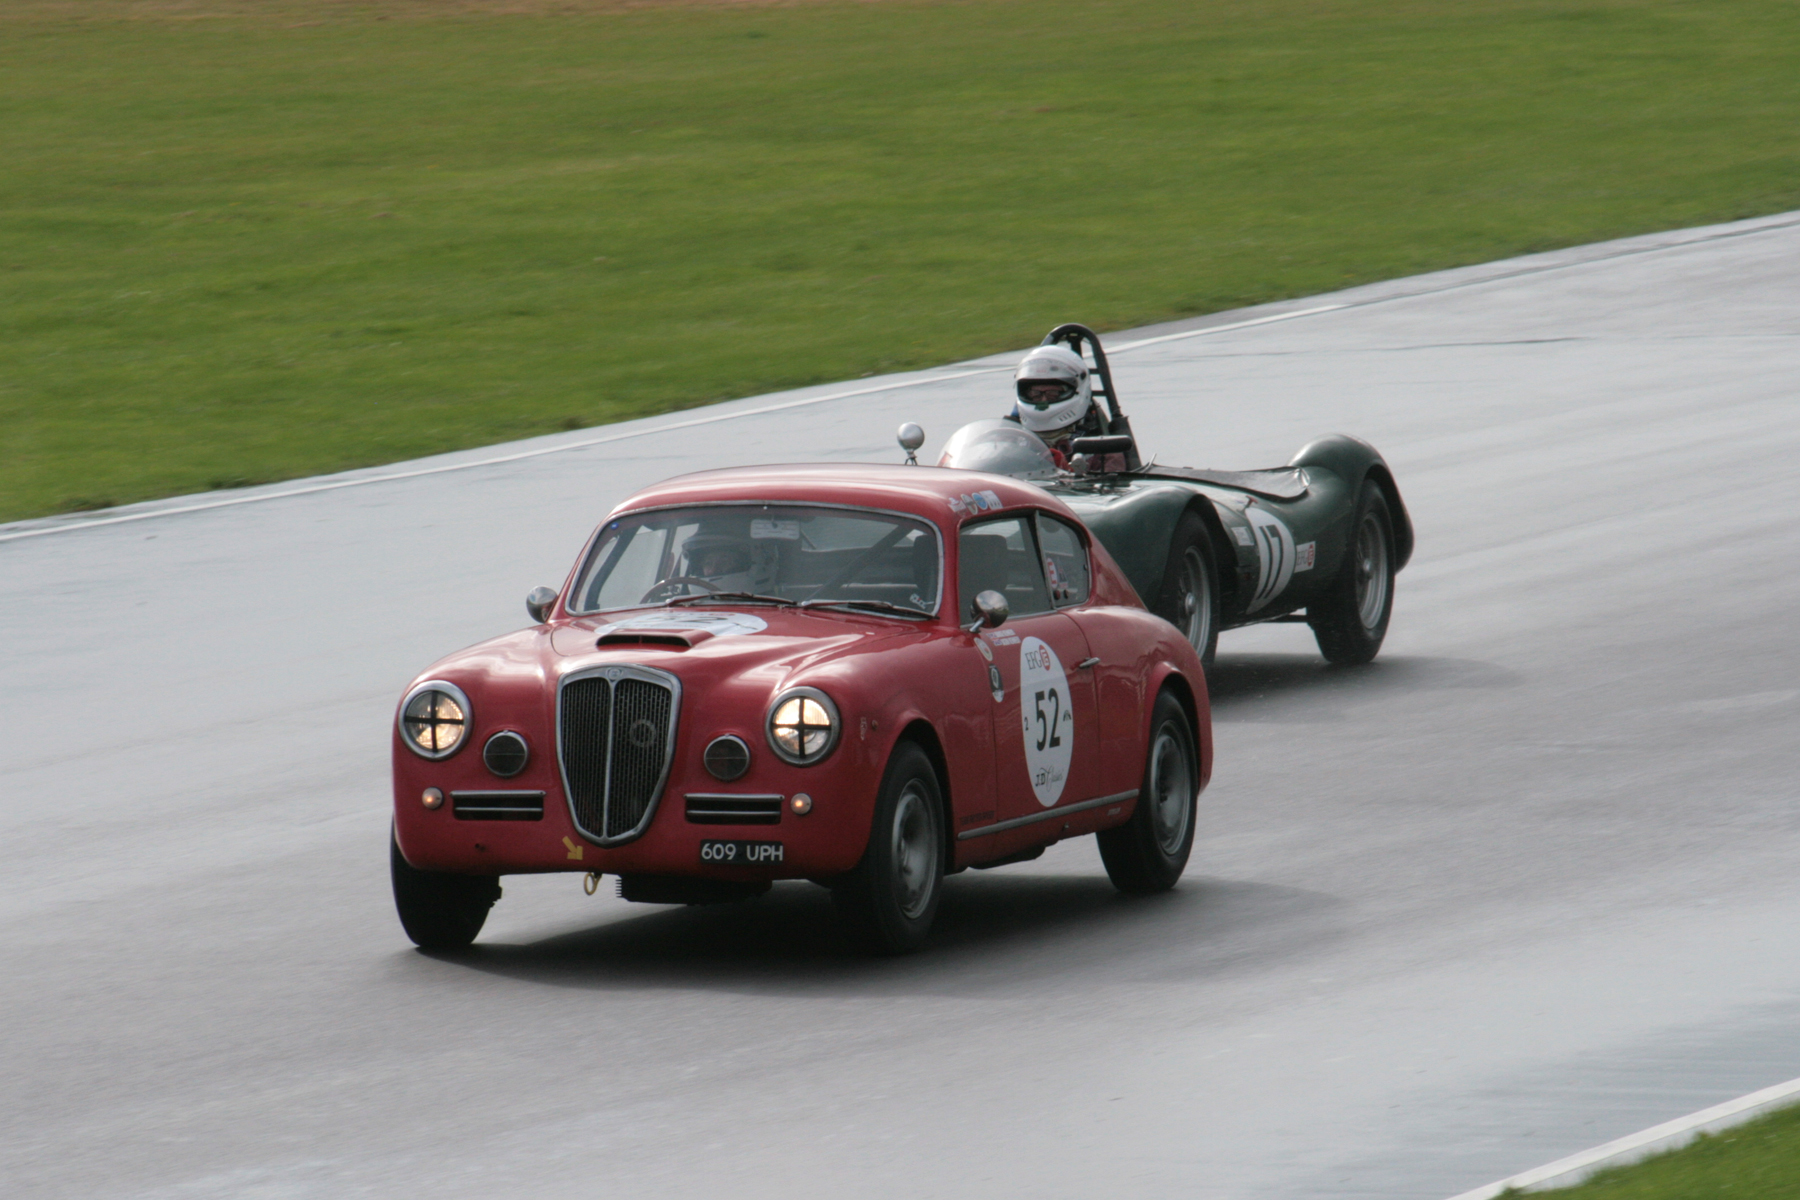 Louise Kennedy heads towards Folly in the Lancia Aurelia B20GT with Alex Quattlebaum about to lap in the LECo2            Photo - John Turner